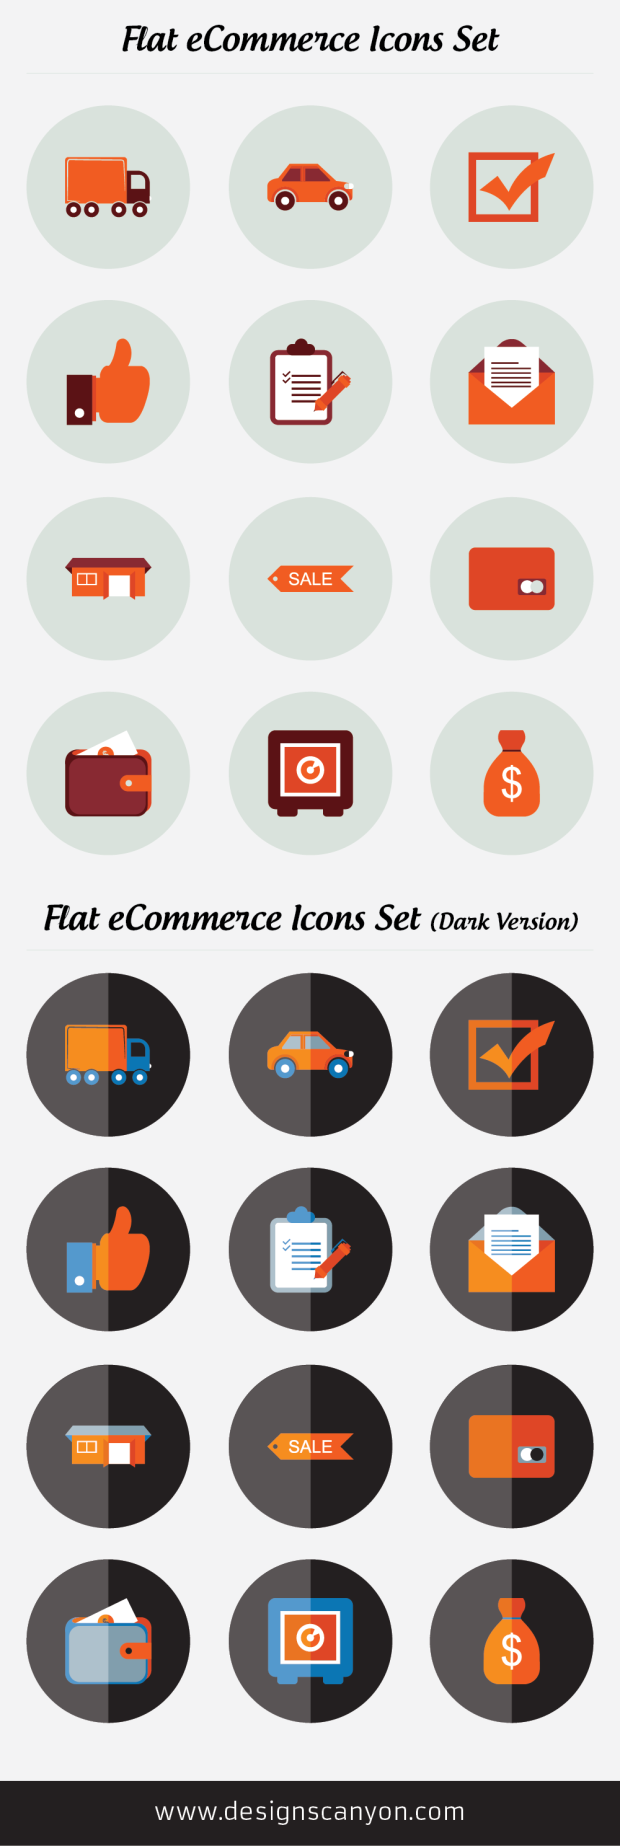 flat-ecommerce-icons-set-free-download